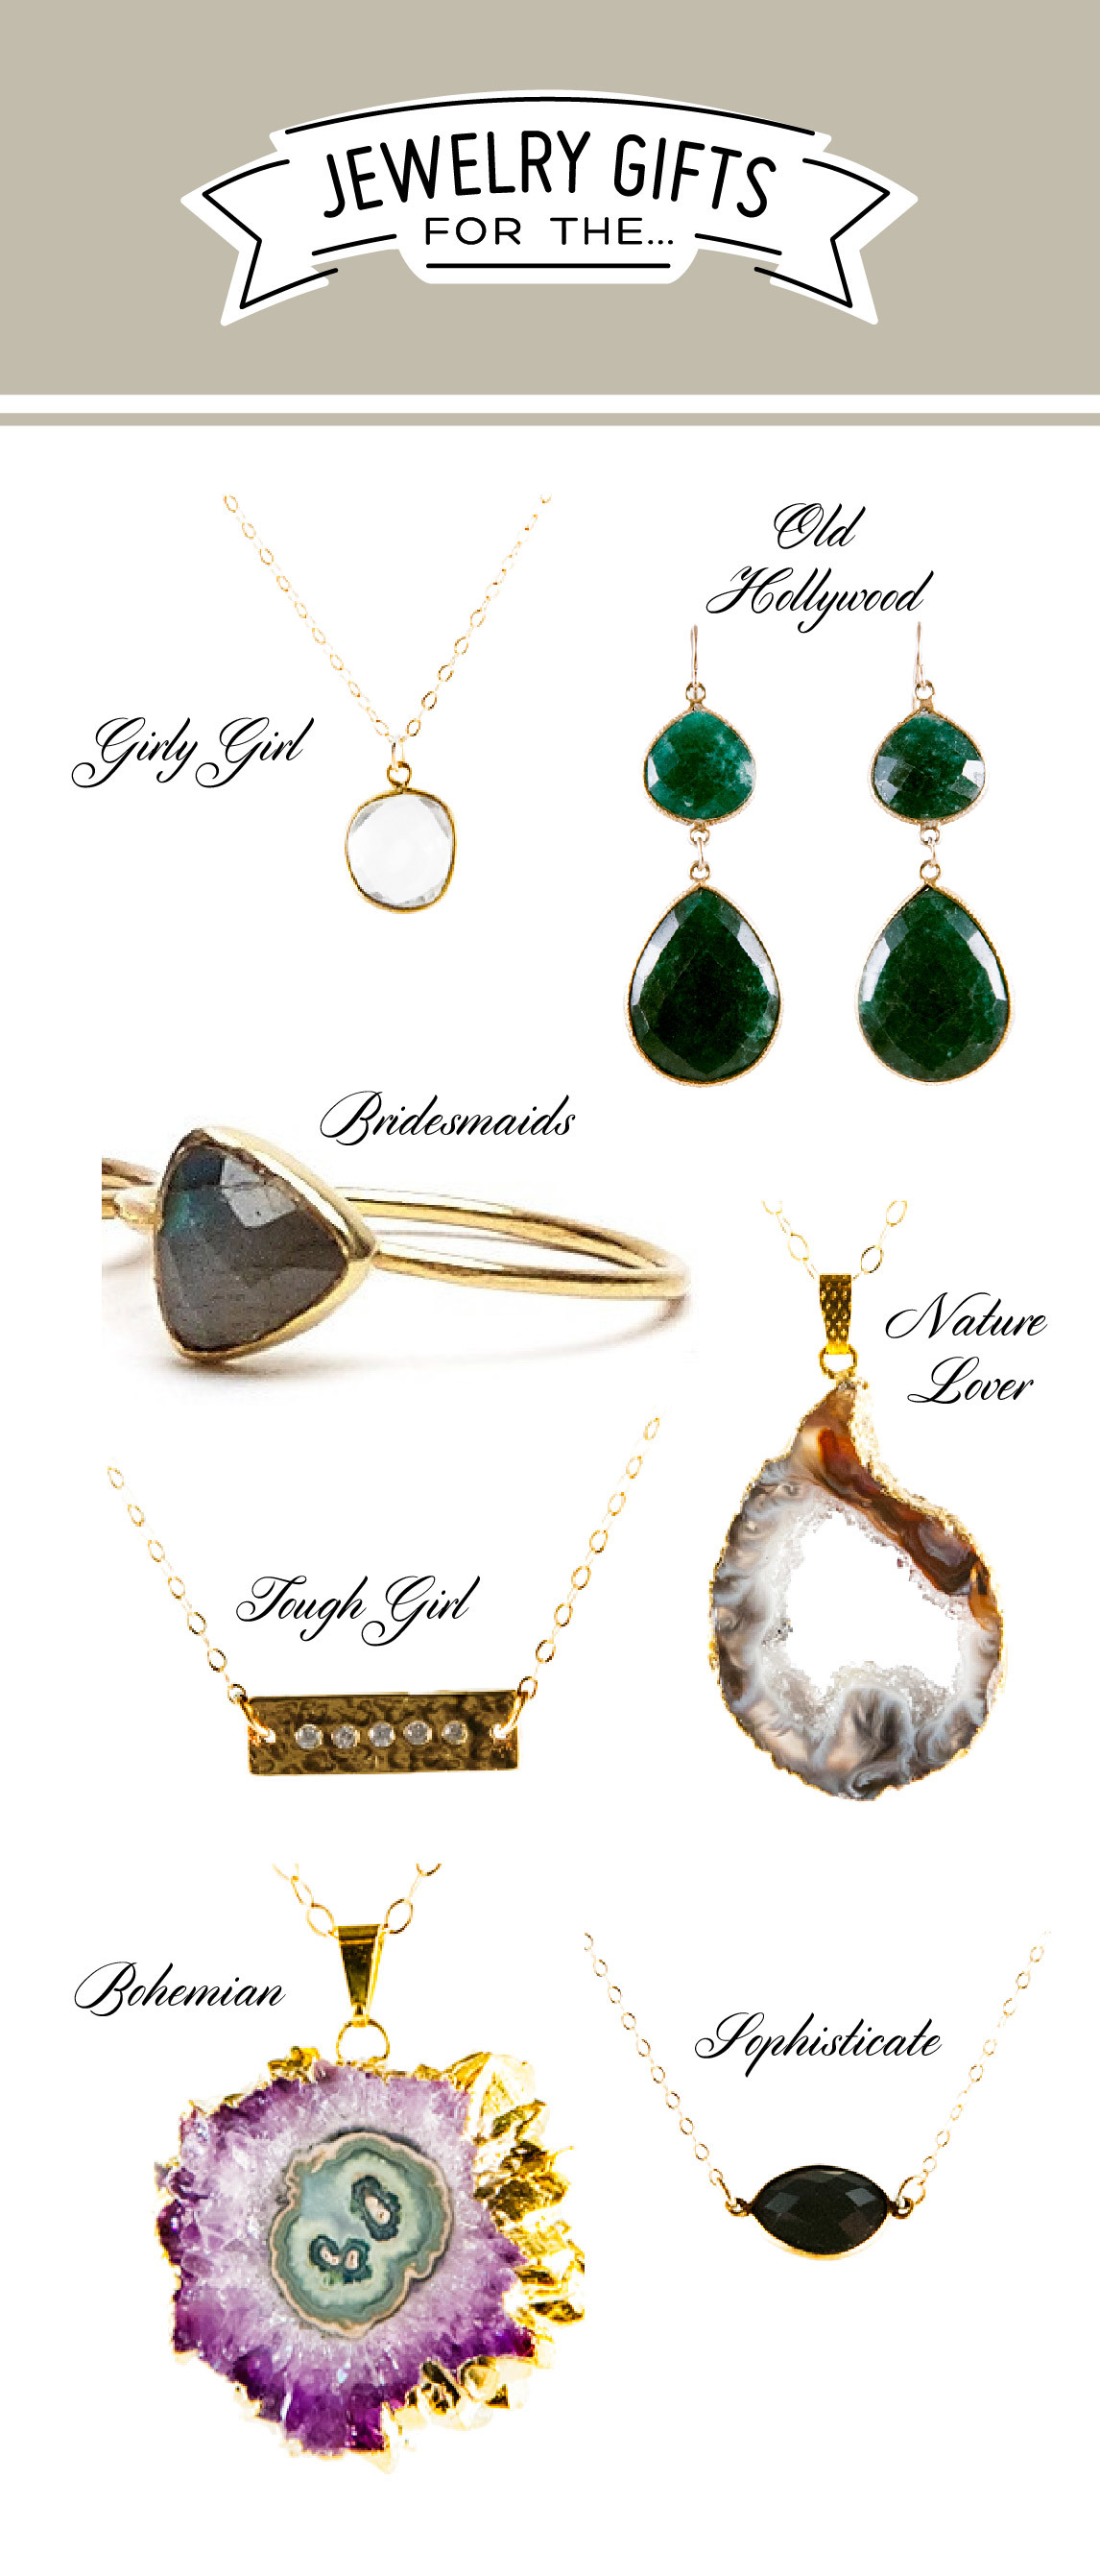 jewelry gift ideas for women, natural mineral jewelry ideas